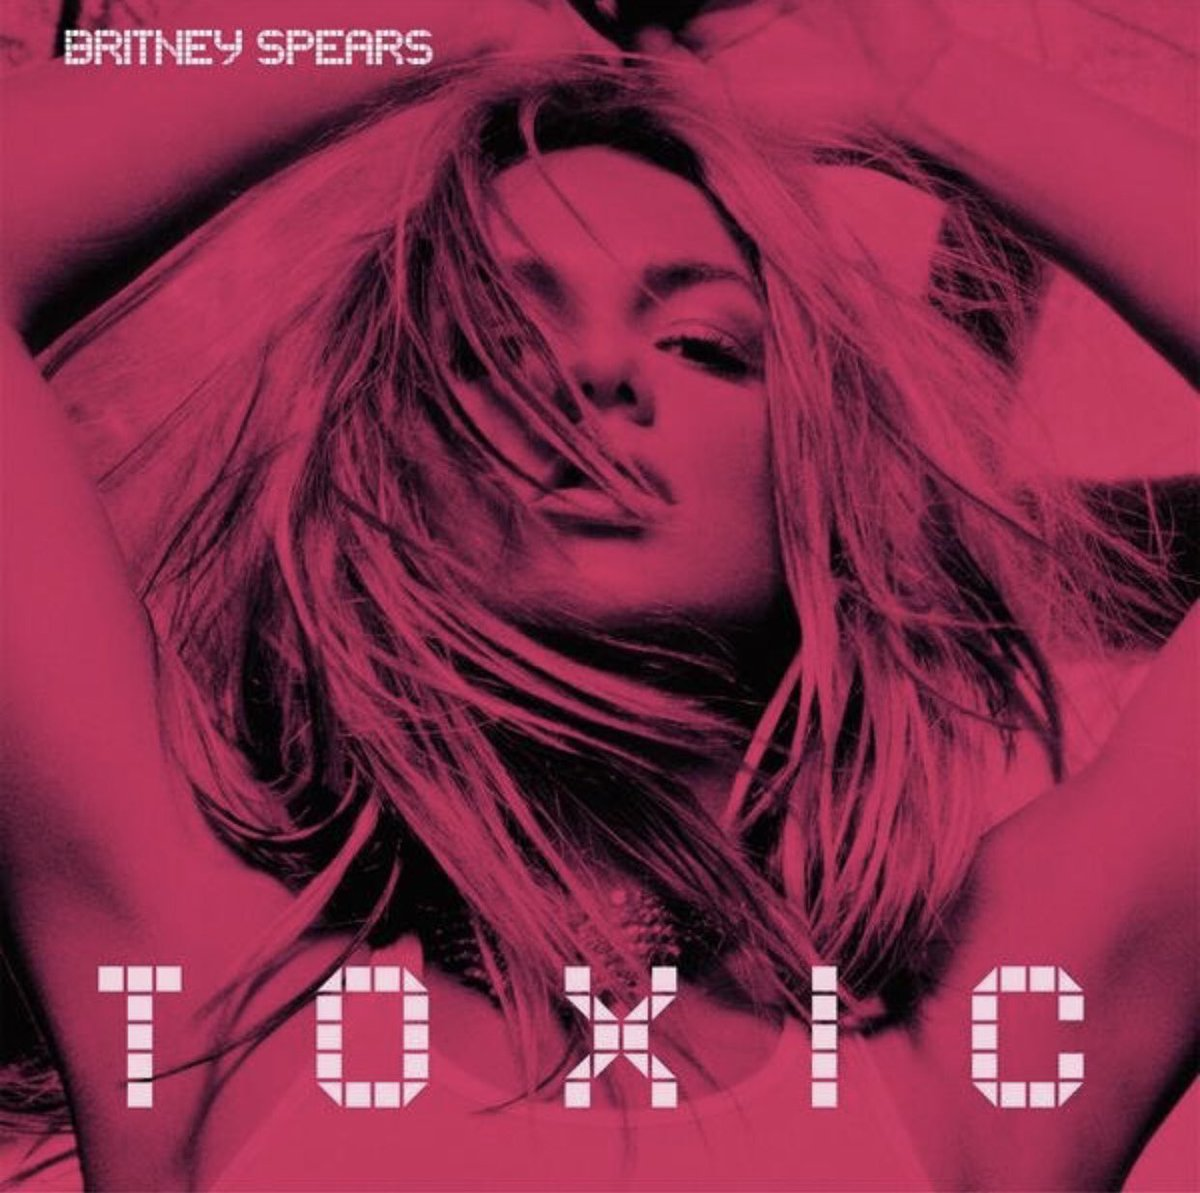 15 years ago today @BritneySpears released her iconic song #Toxic as the second single from &#39;In The Zone&#39;! The song won a Grammy for &#39;Best Dance Recording&#39; in 2005!  #Toxic15<br>http://pic.twitter.com/ZebMPtFWiW